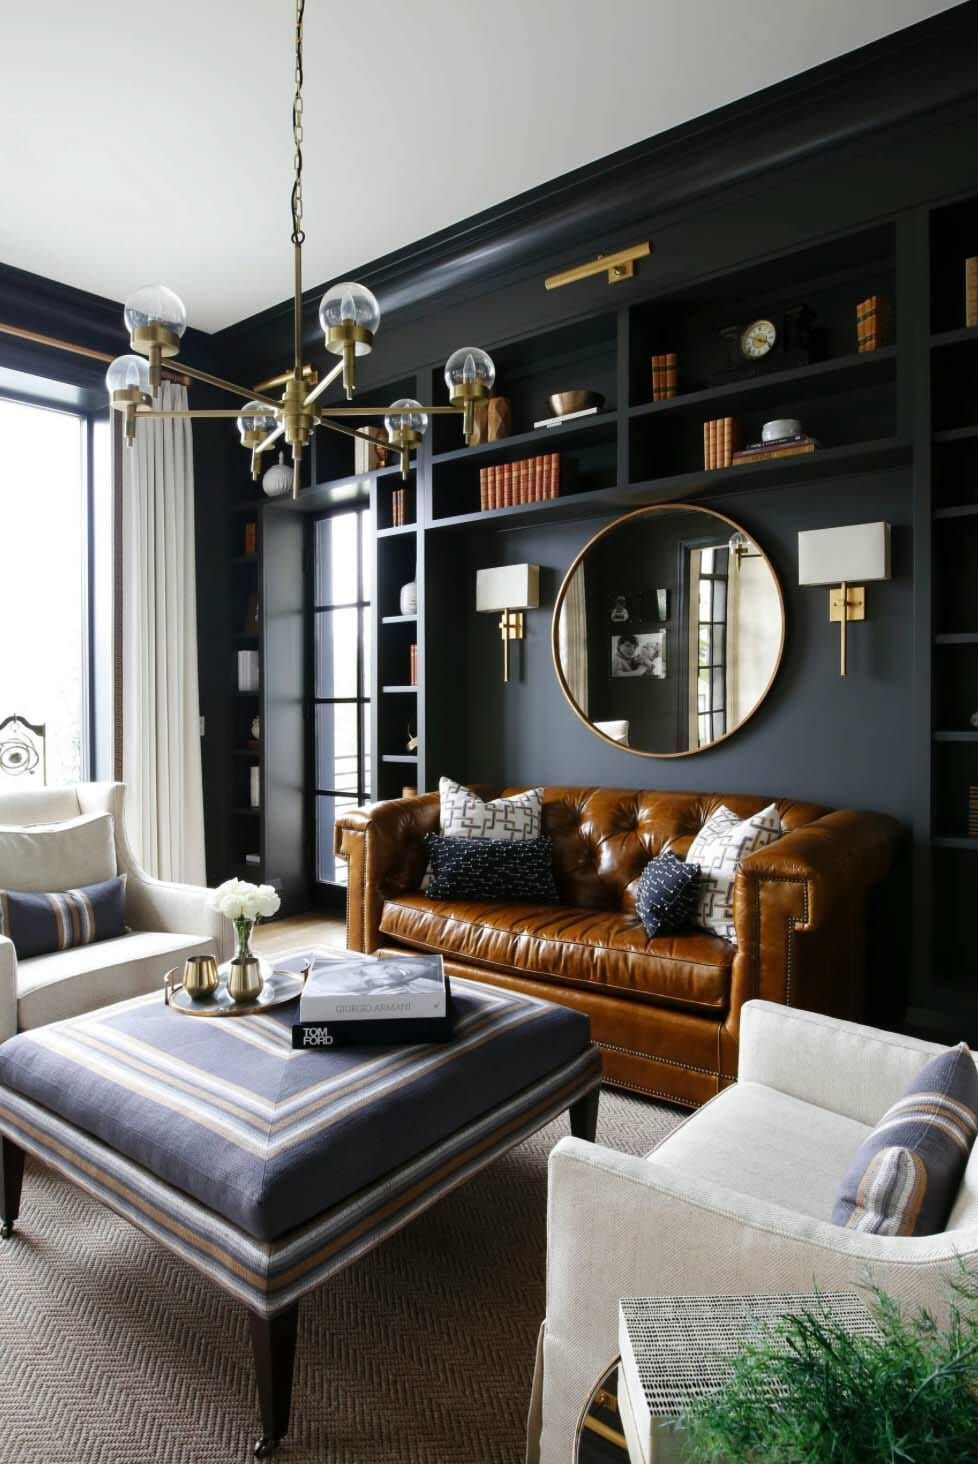 The best living room design ideas for your home 28